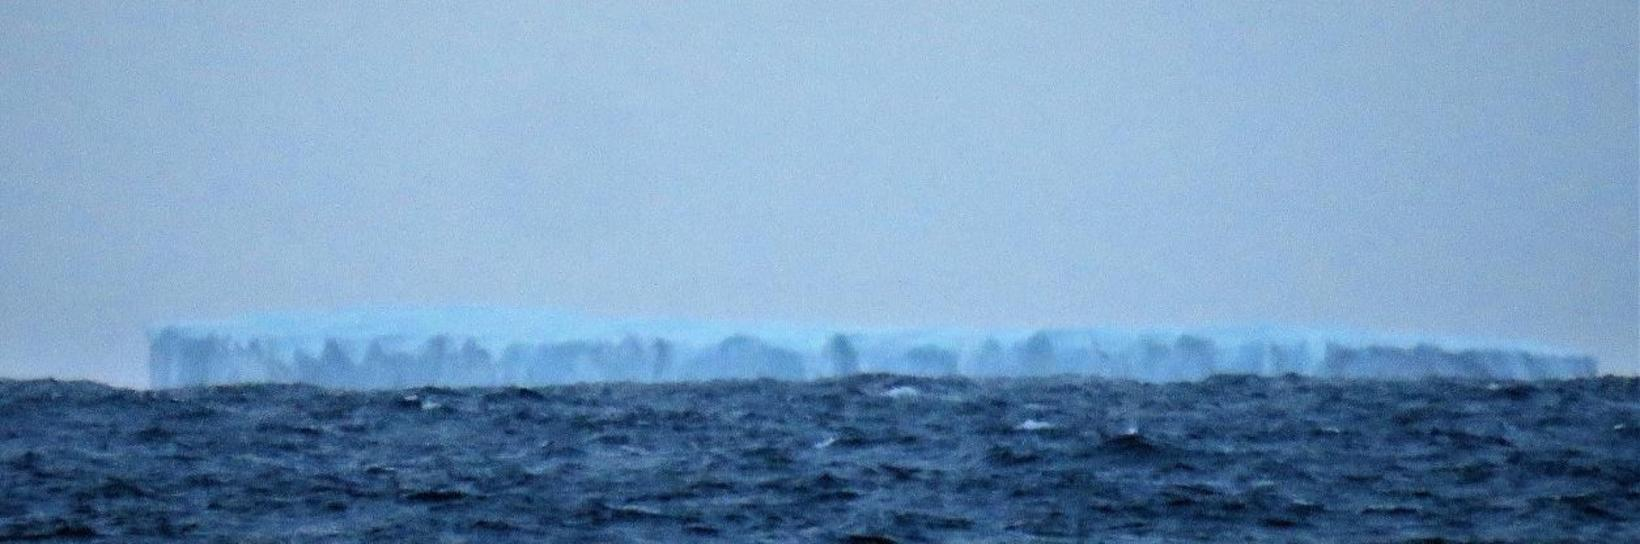 One of the two icebergs.